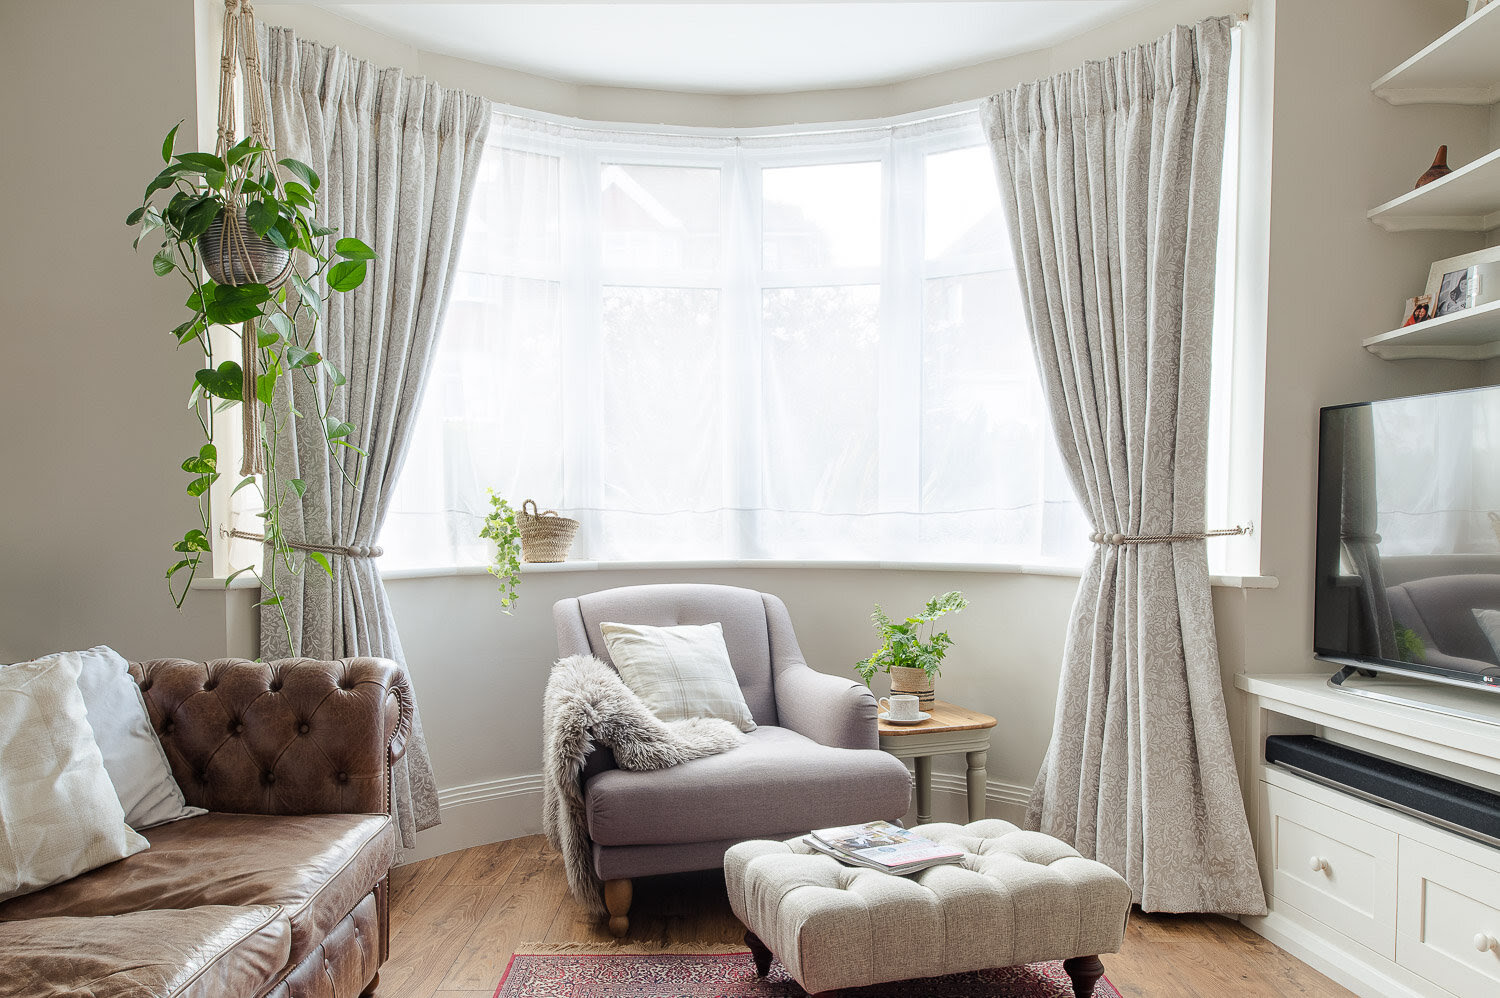 Our bay window curtains  Fifi McGee  Interiors + Renovation Blog